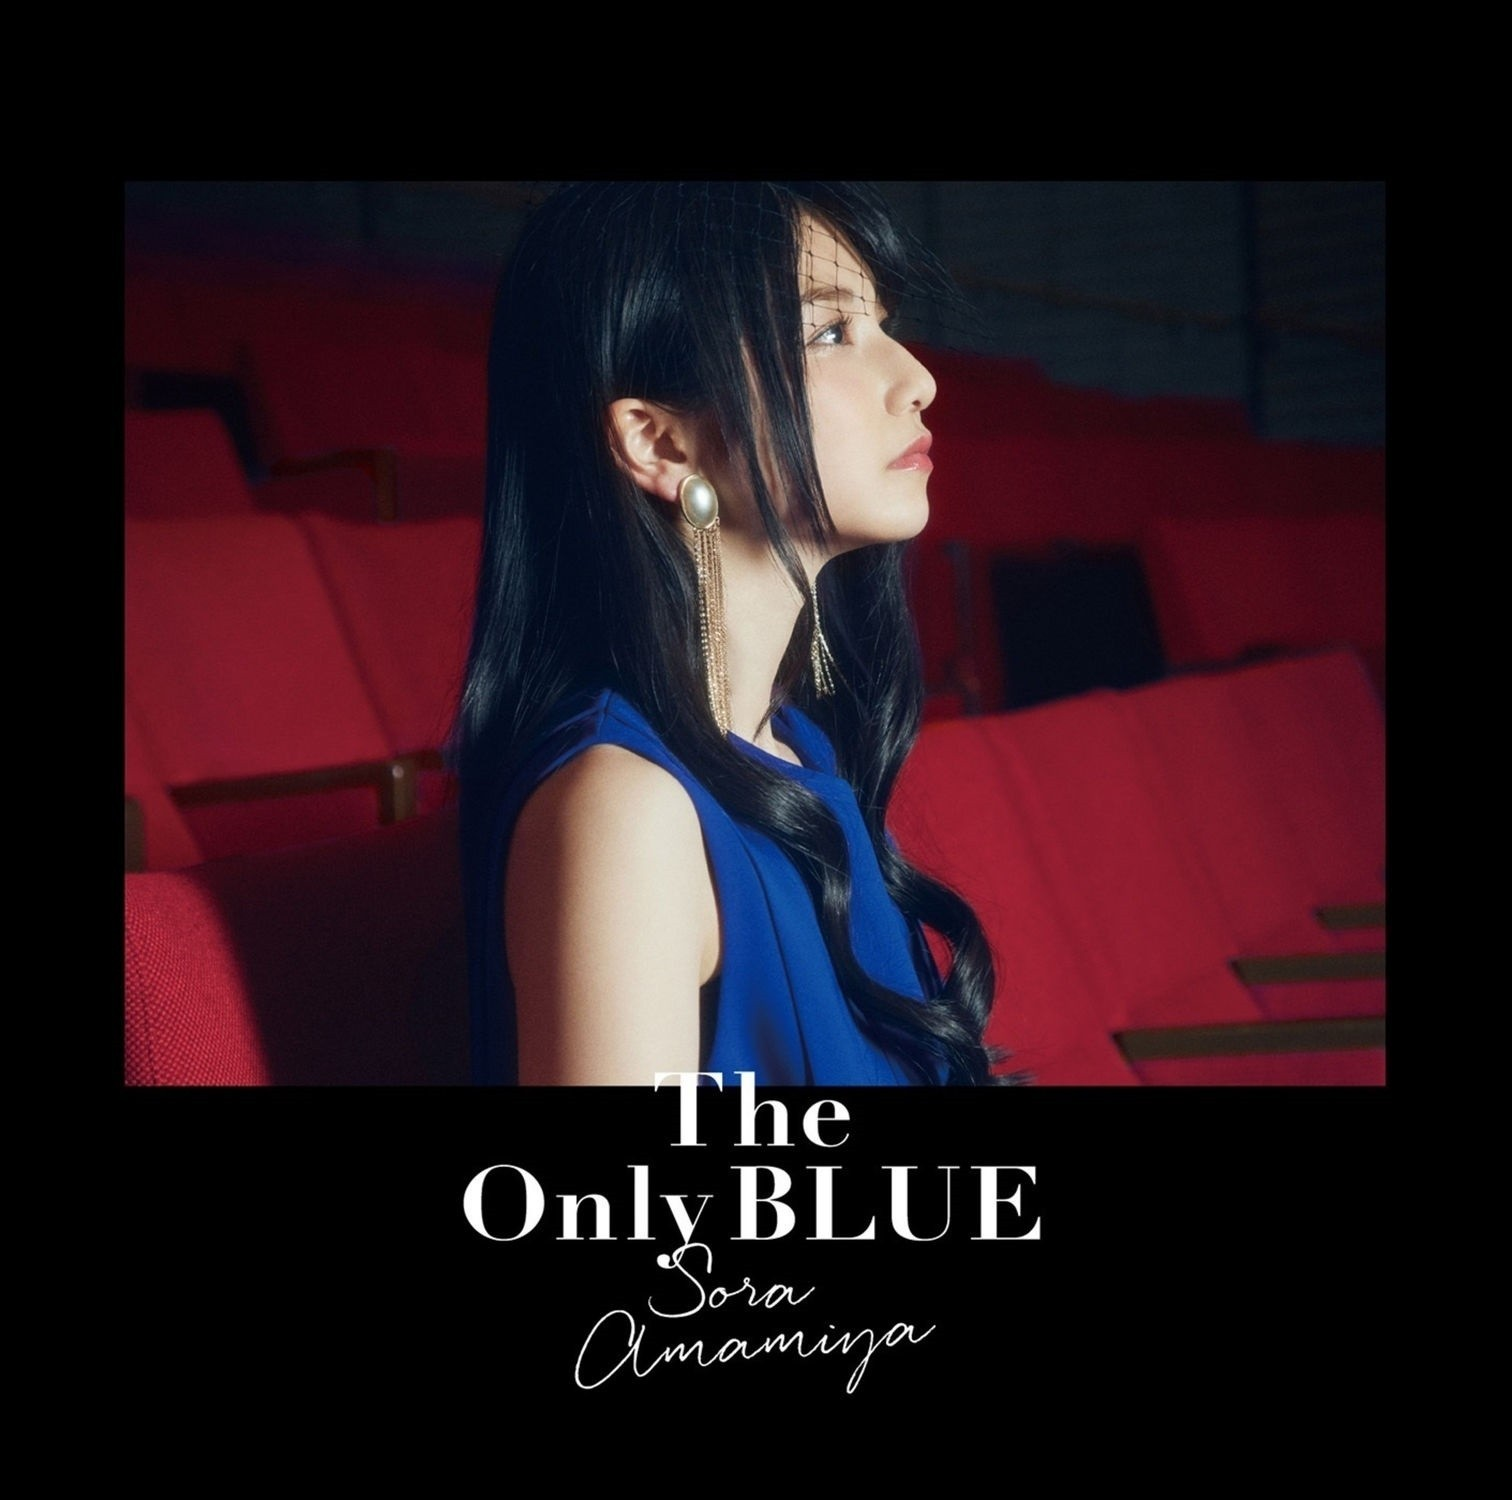 雨宮天 (Sora Amamiya) – The Only BLUE [24bit Lossless + MP3 320 / WEB] [2018.07.11]